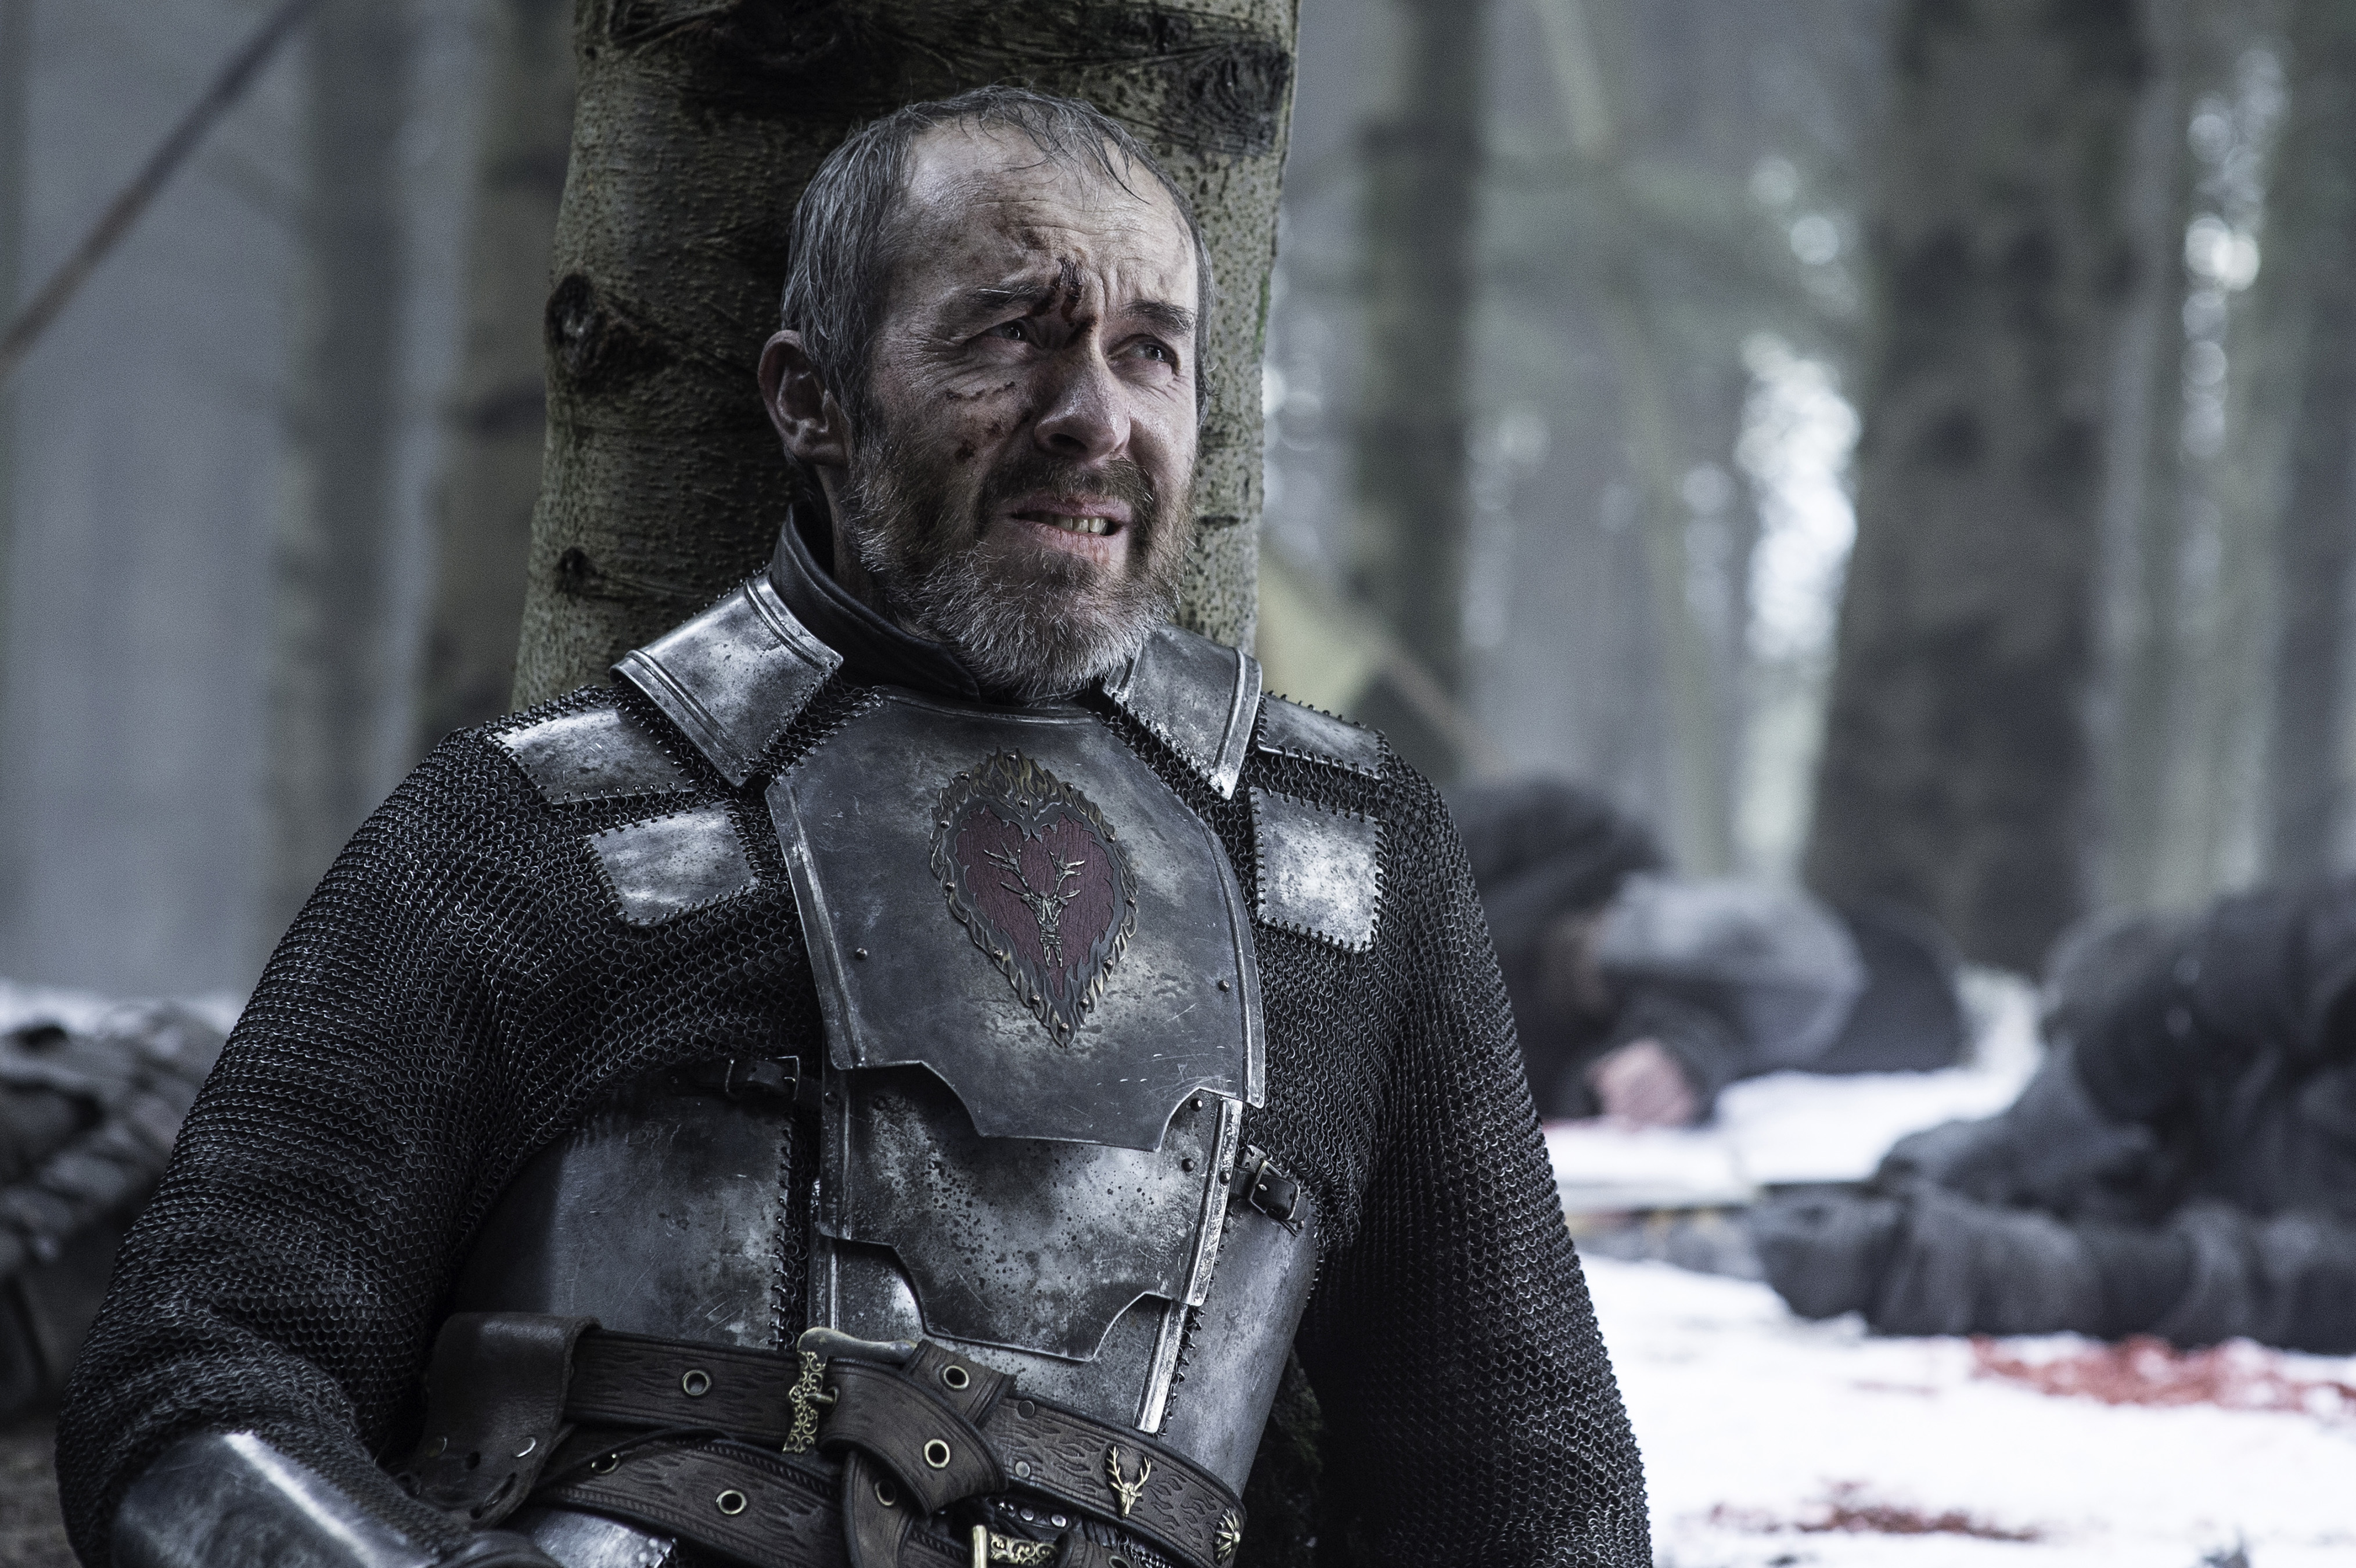 Stephen Dillane as Stannis Baratheon in Game of Thrones